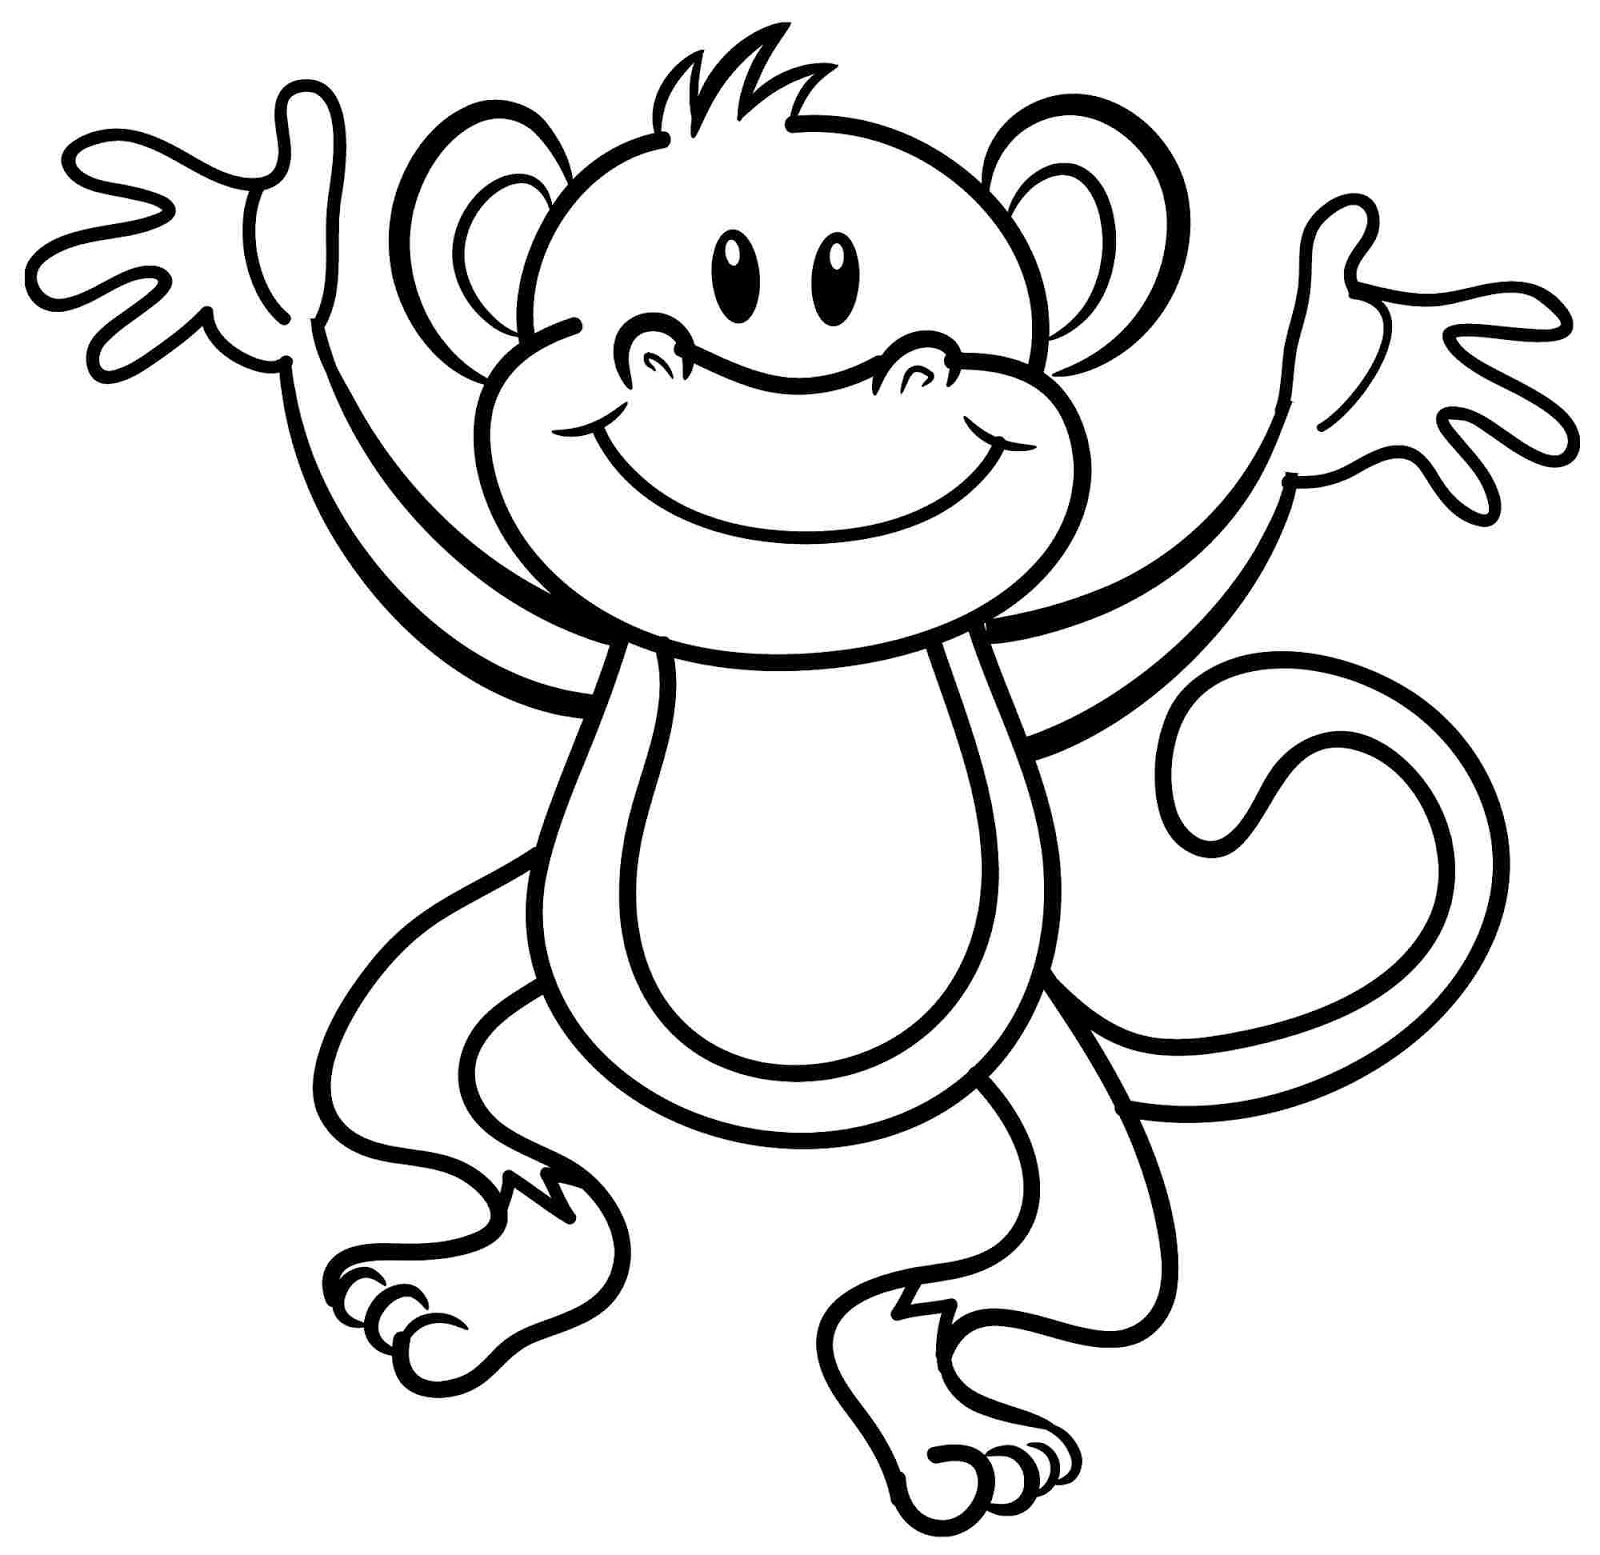 1600x1555 Year Of The Monkey clipart monyet